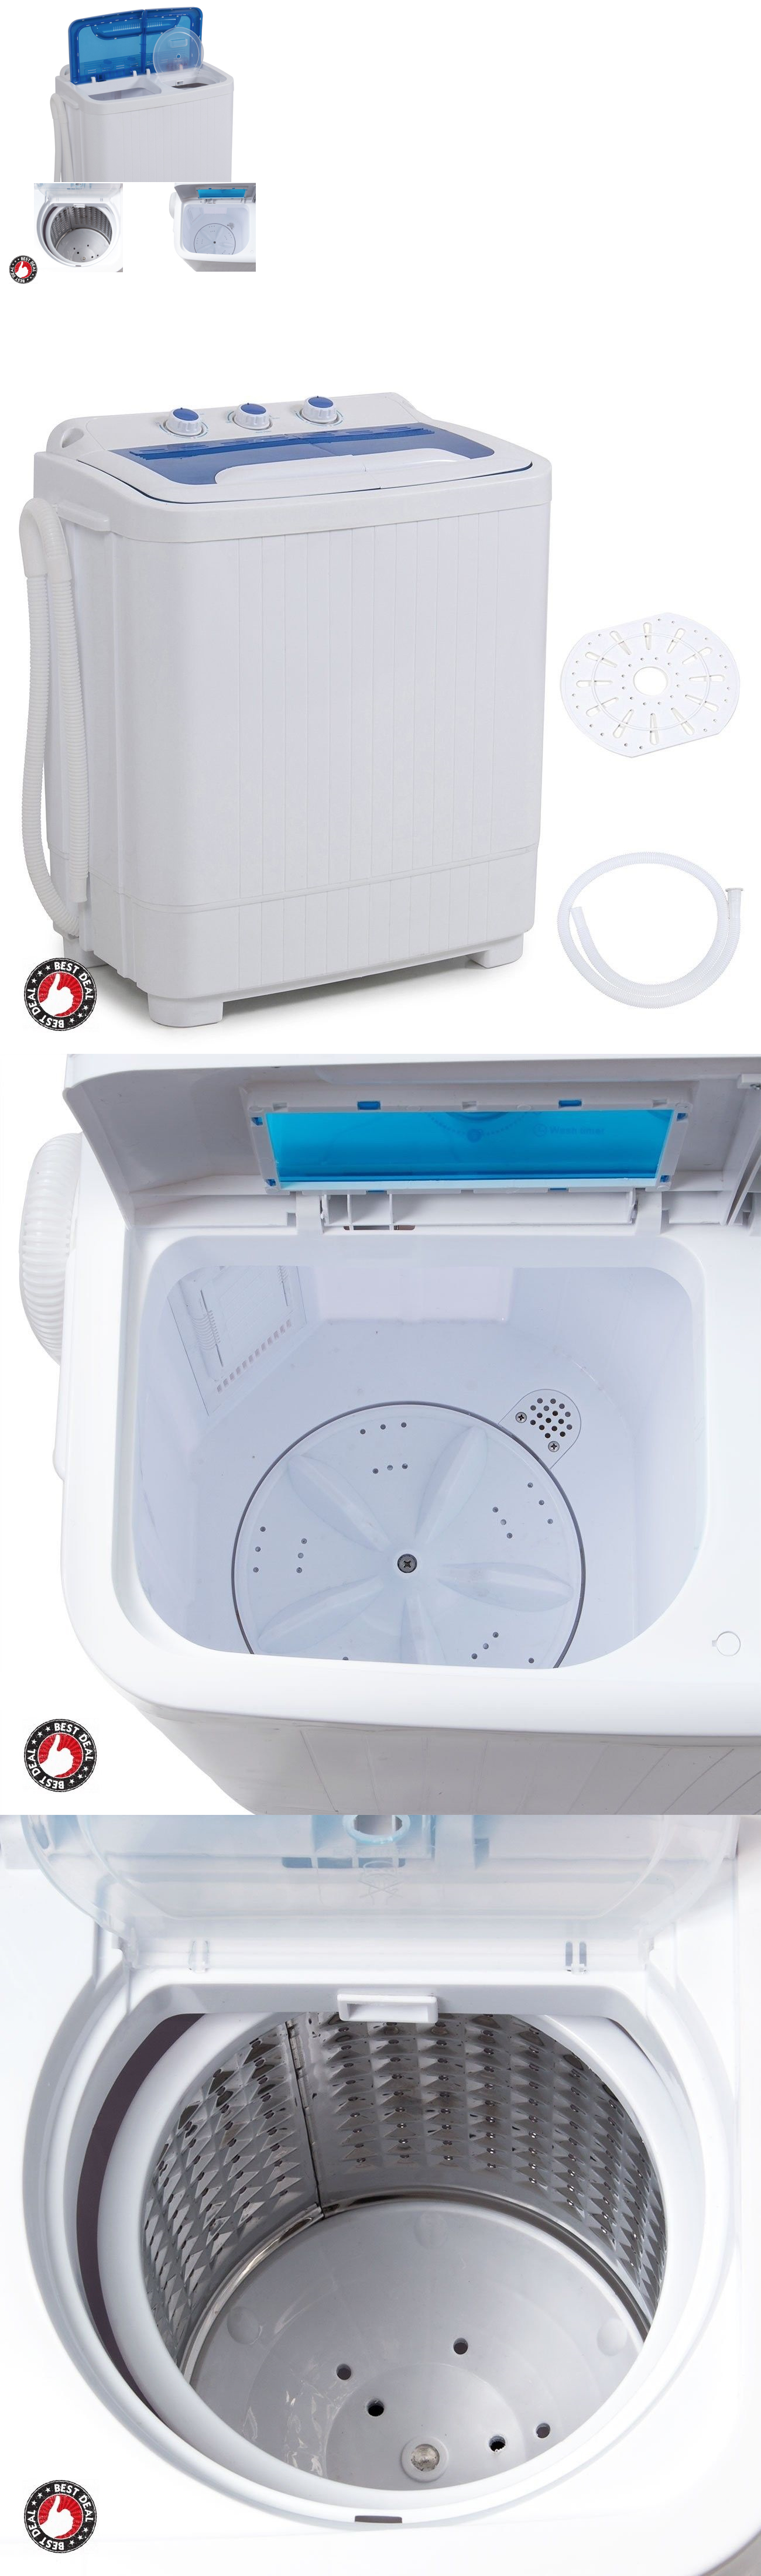 Washing Machines 71256: Washer And Dryer Combo Apartment Washing Machine  Small Portable Rv Compact Top